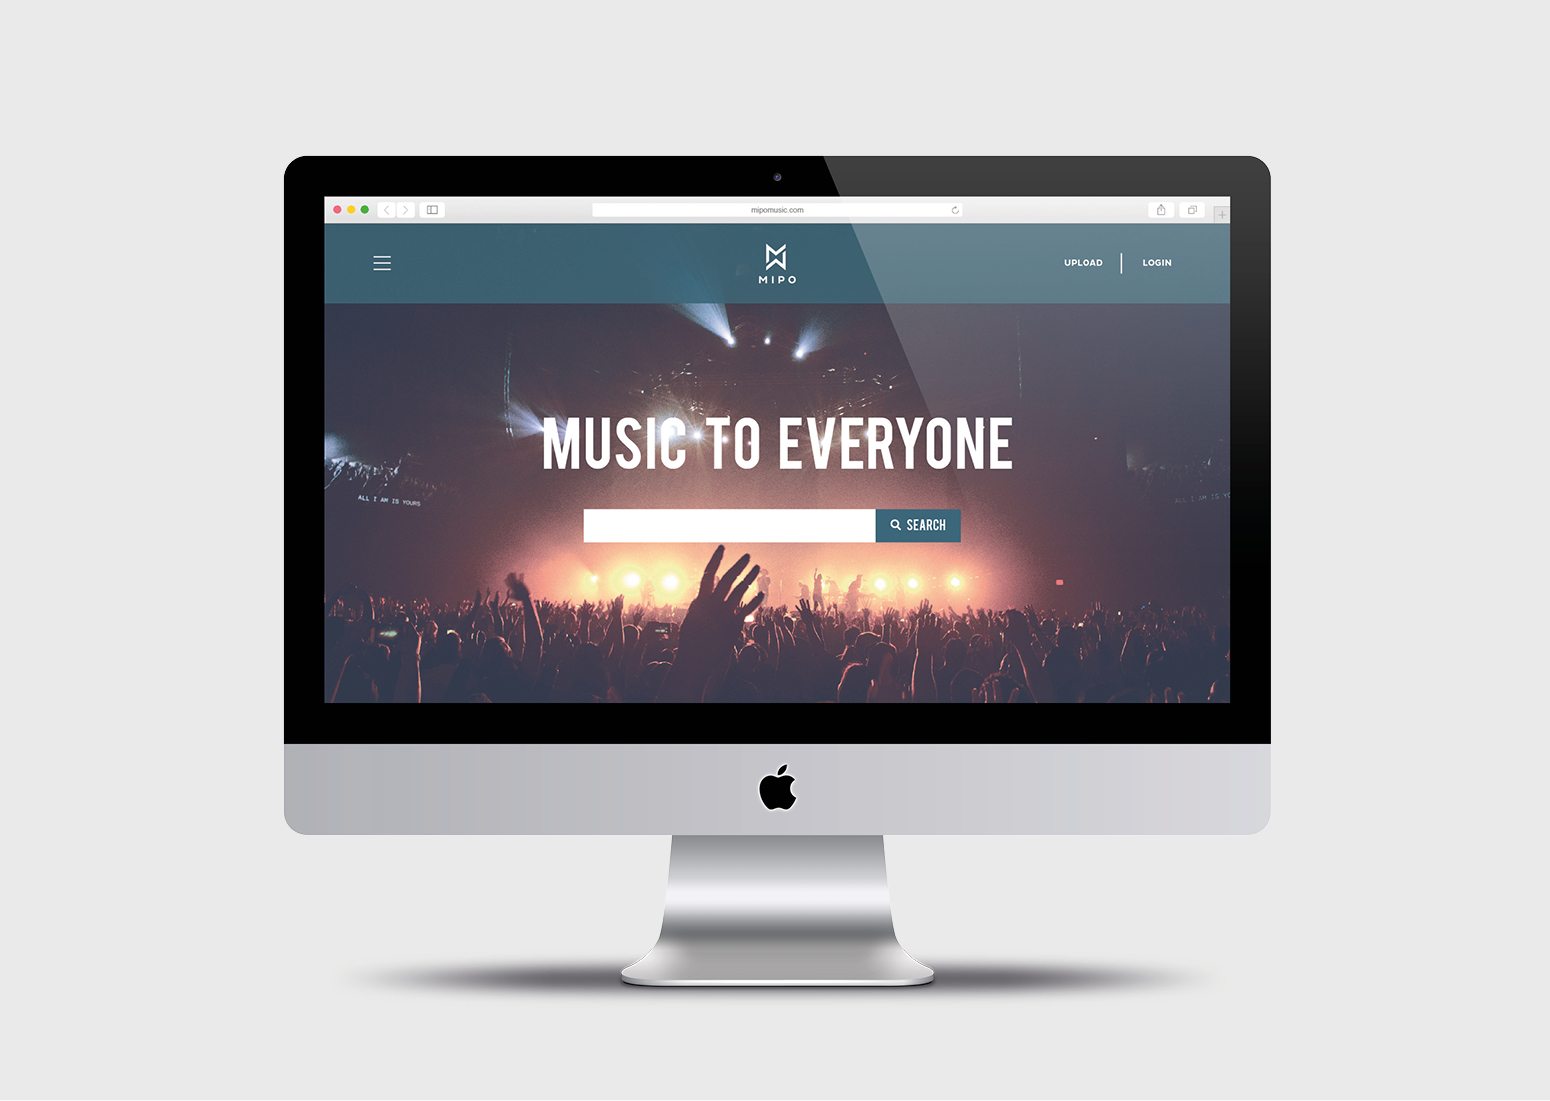 paolo_salmaso_Mipo_musica_logo_web_design_venezia_grafico_graphic_designer - Simple Sign